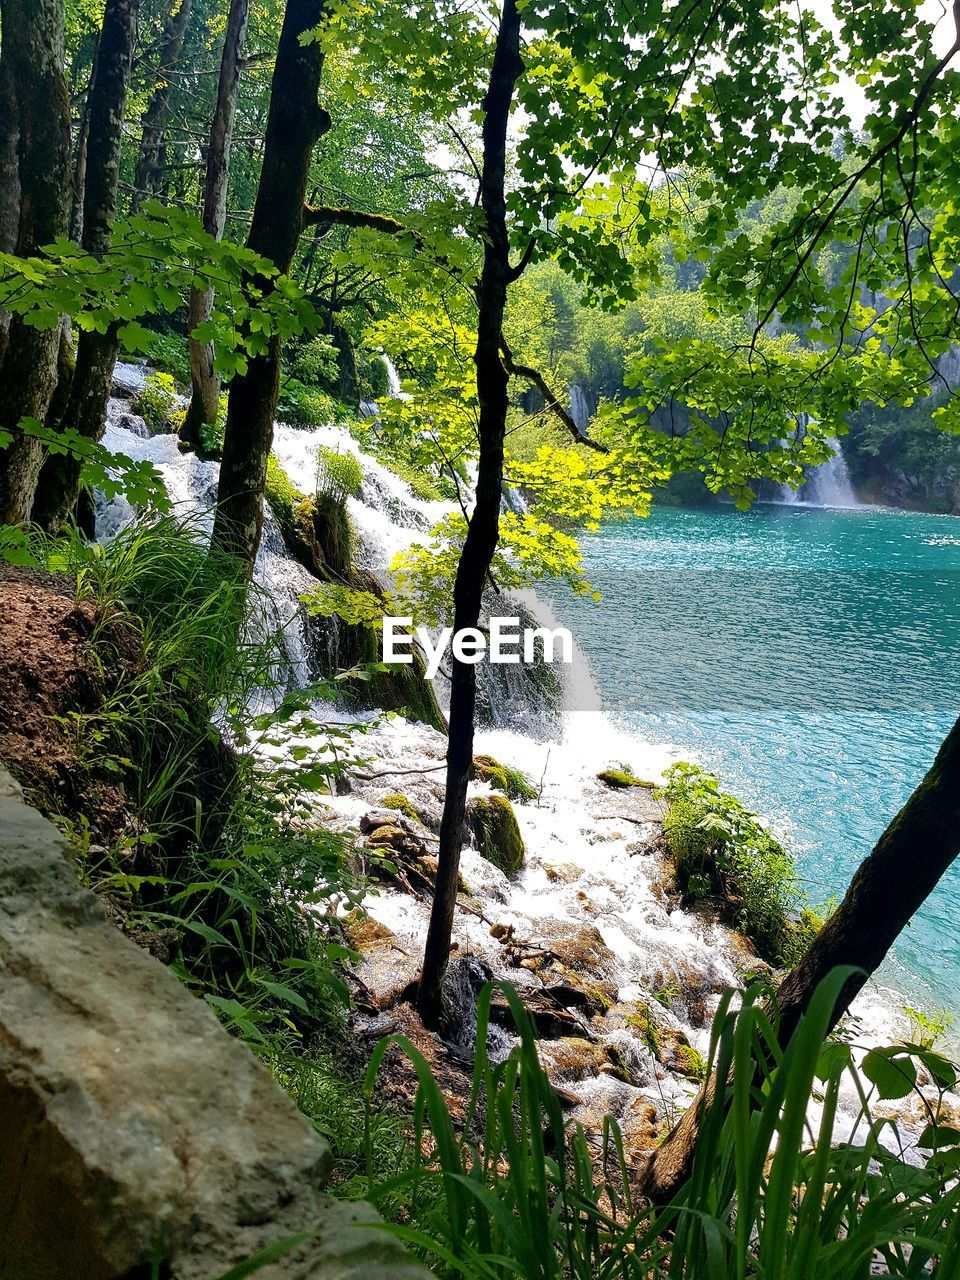 water, tree, plant, beauty in nature, forest, scenics - nature, land, nature, tranquility, flowing water, growth, green color, day, no people, motion, river, tranquil scene, waterfall, flowing, outdoors